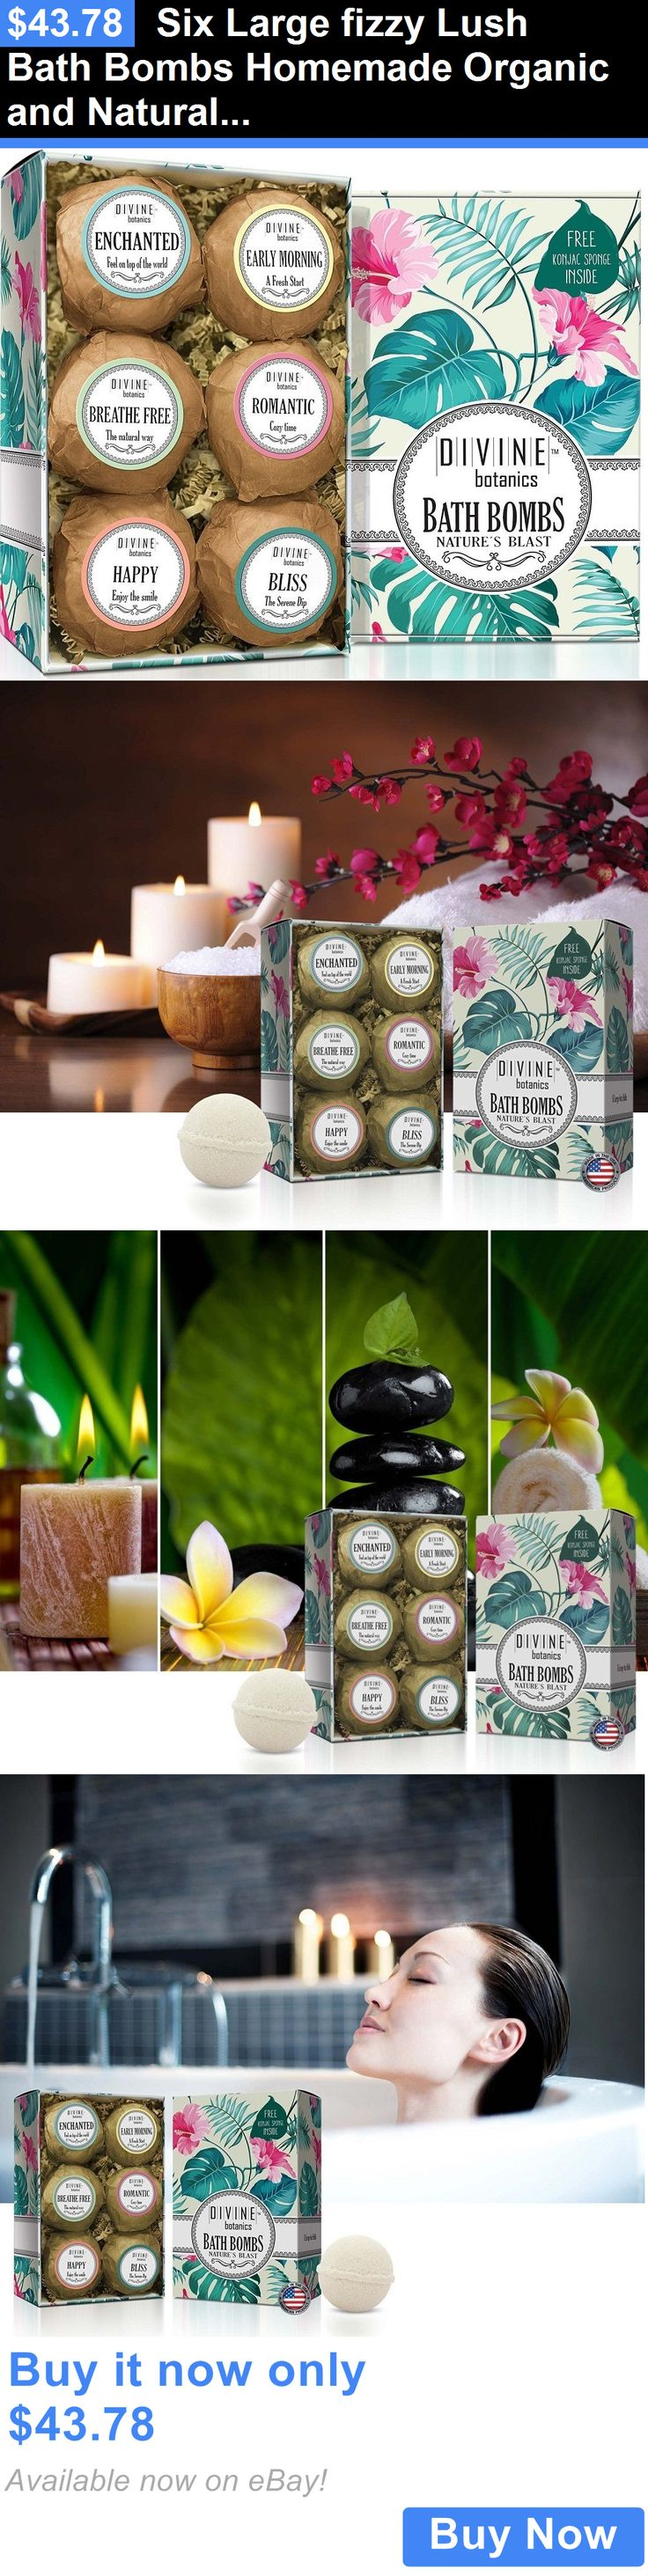 Bath Bombs and Fizzies: Six Large Fizzy Lush Bath Bombs Homemade Organic And Natural + Konjac Sponge BUY IT NOW ONLY: $43.78